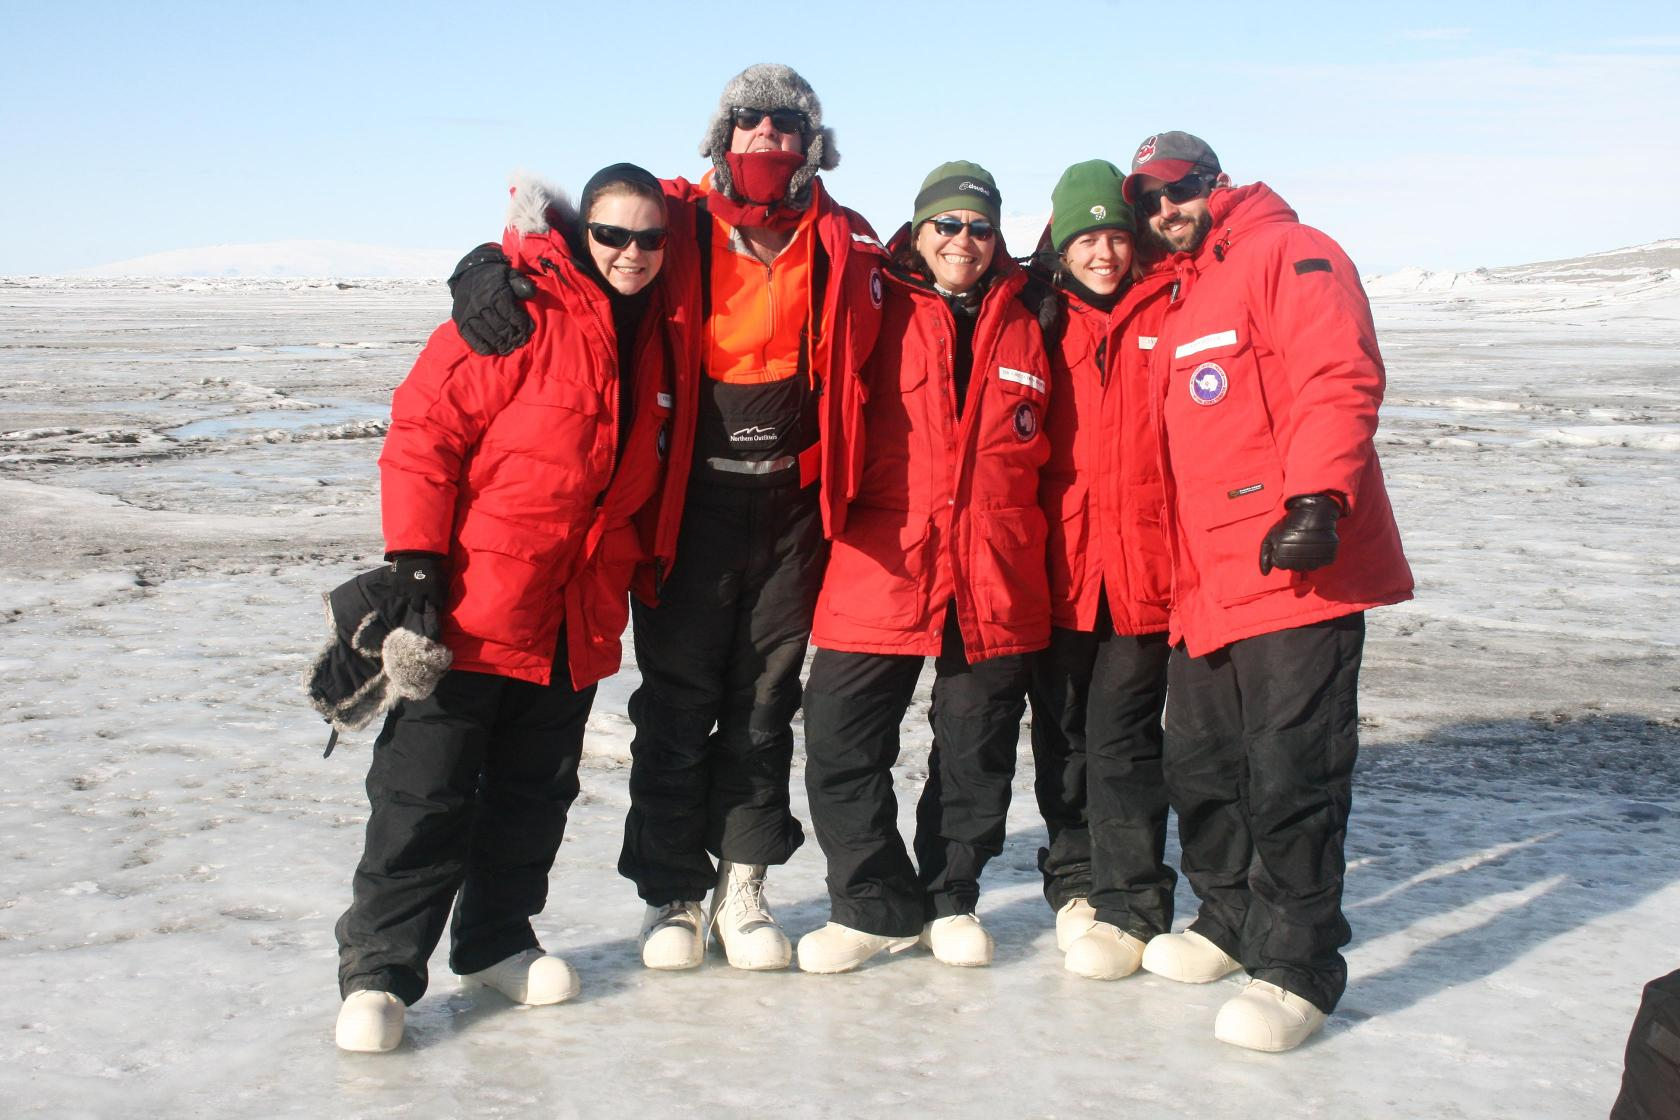 Gretchen Hofmann and her students on the ice in Antarctica